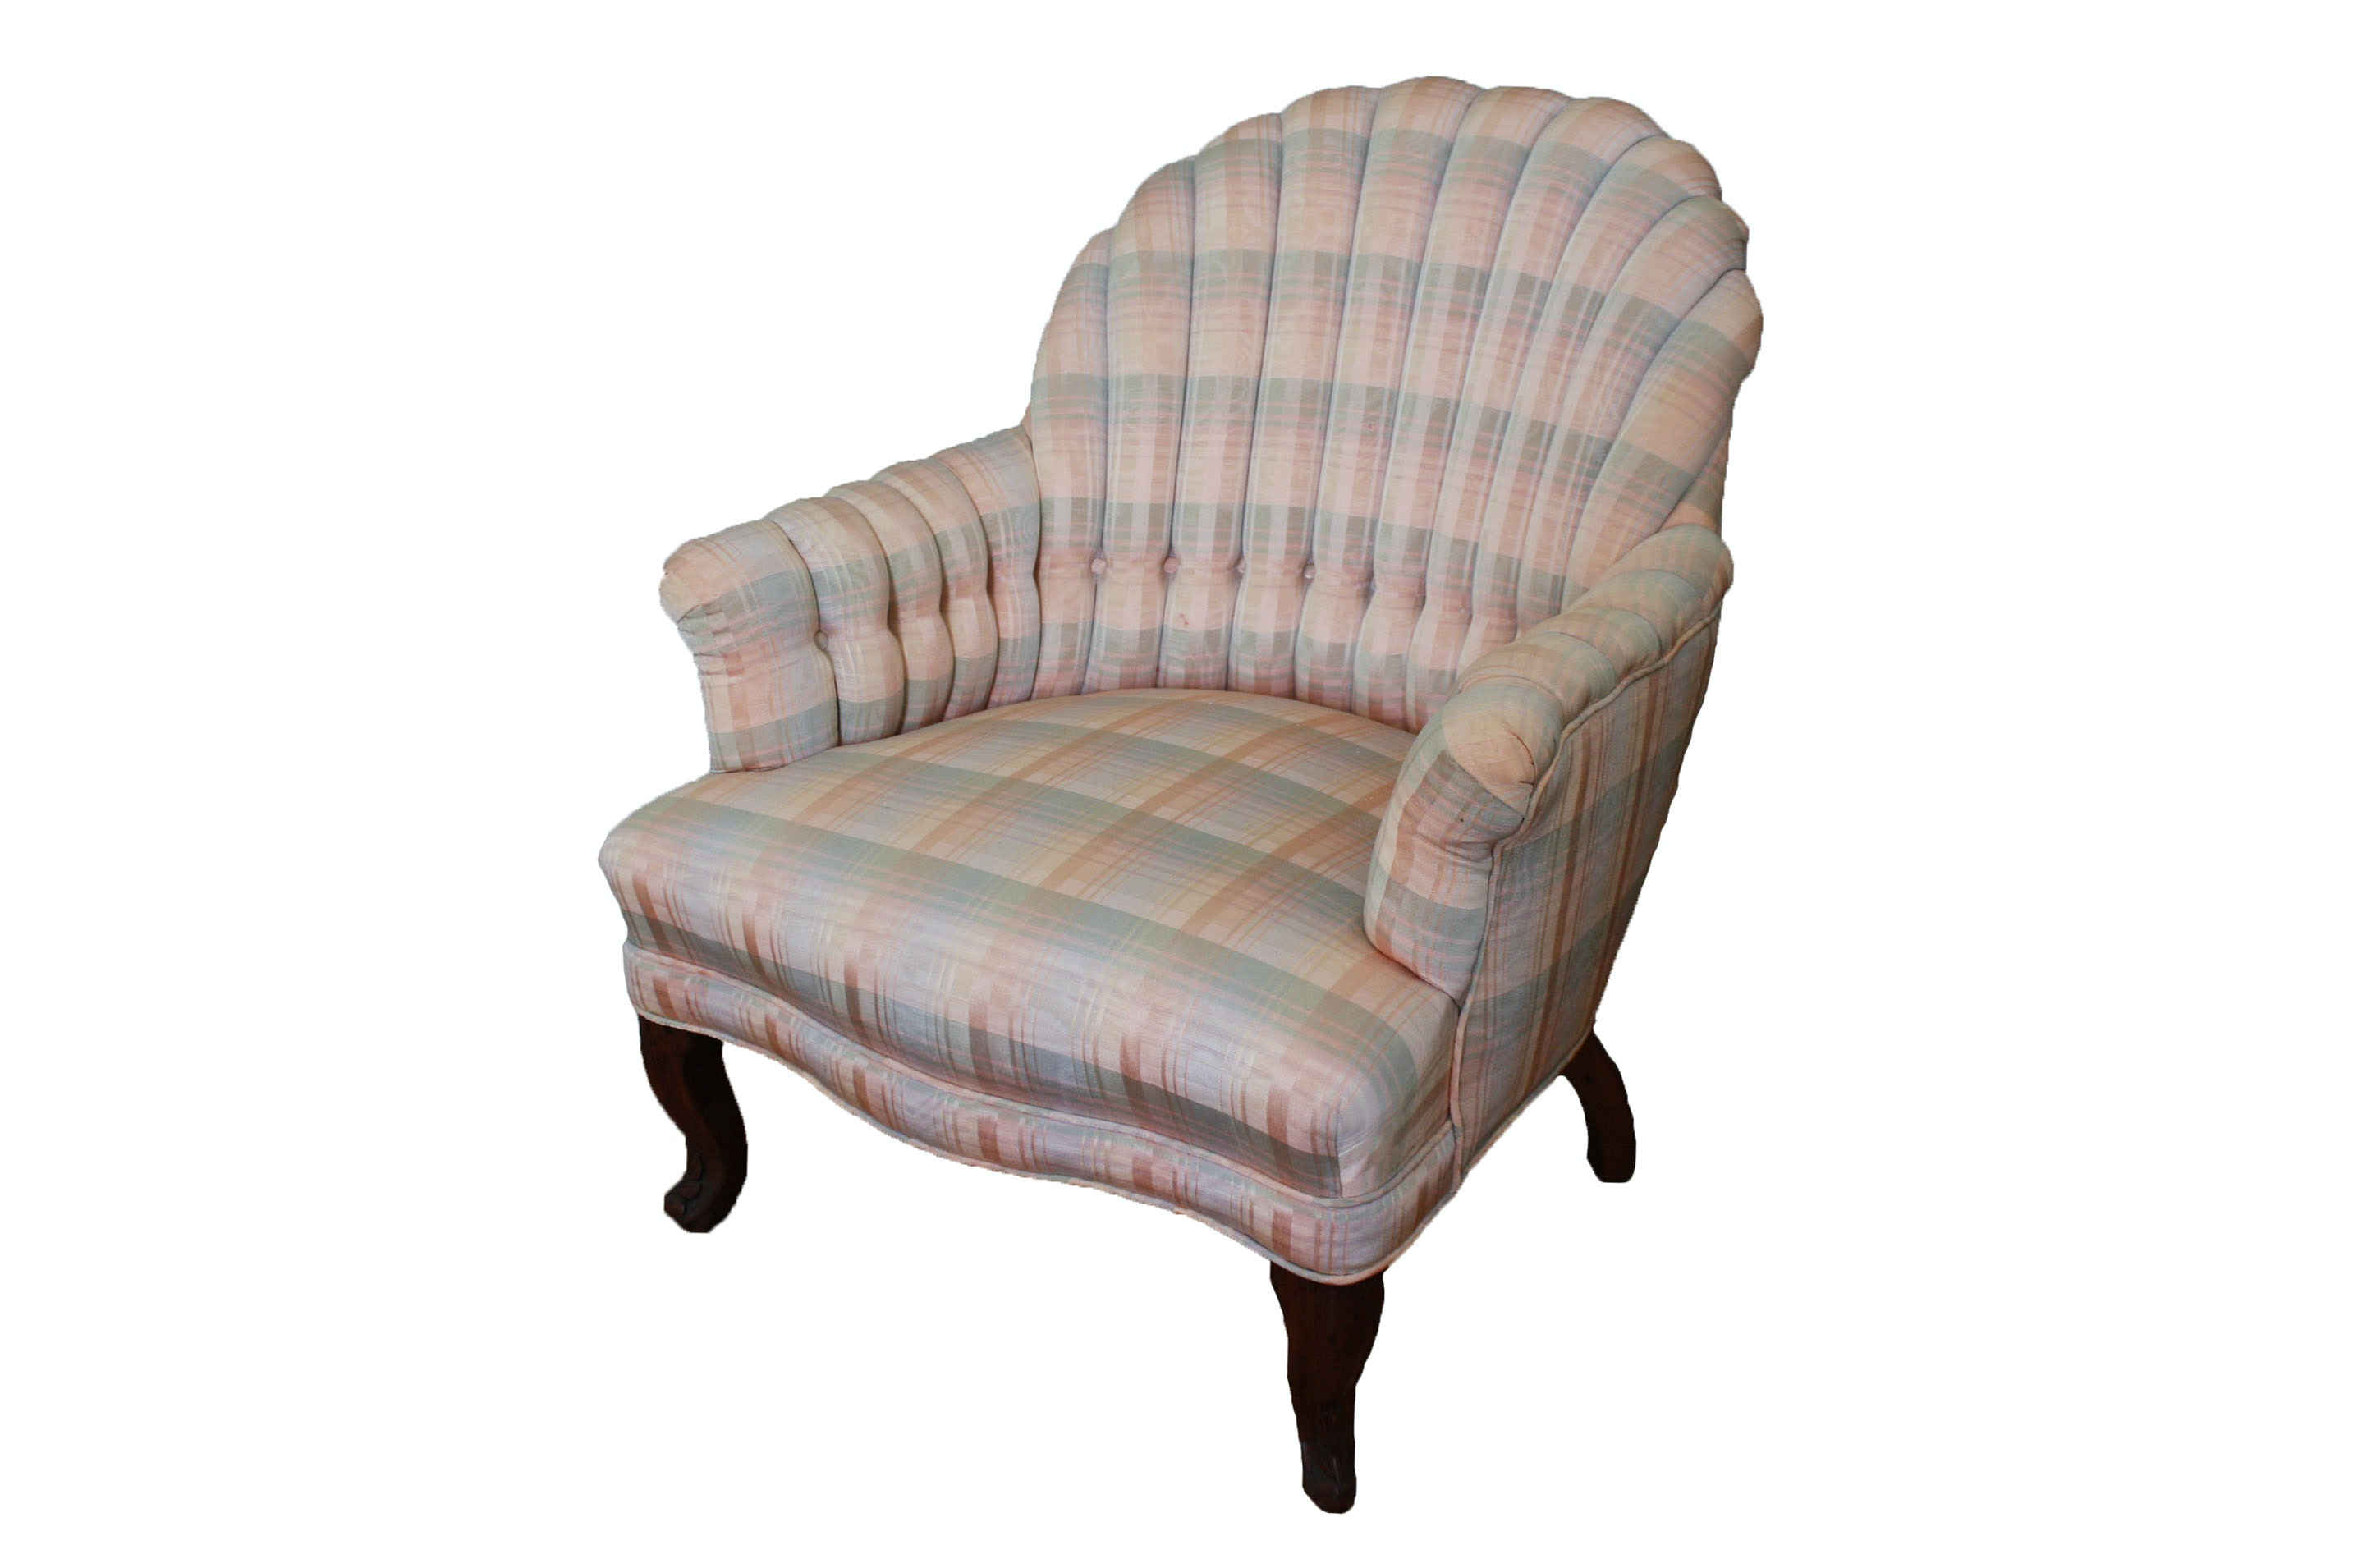 Vintage Queen Anne Style Upholstered Shellback Armchair